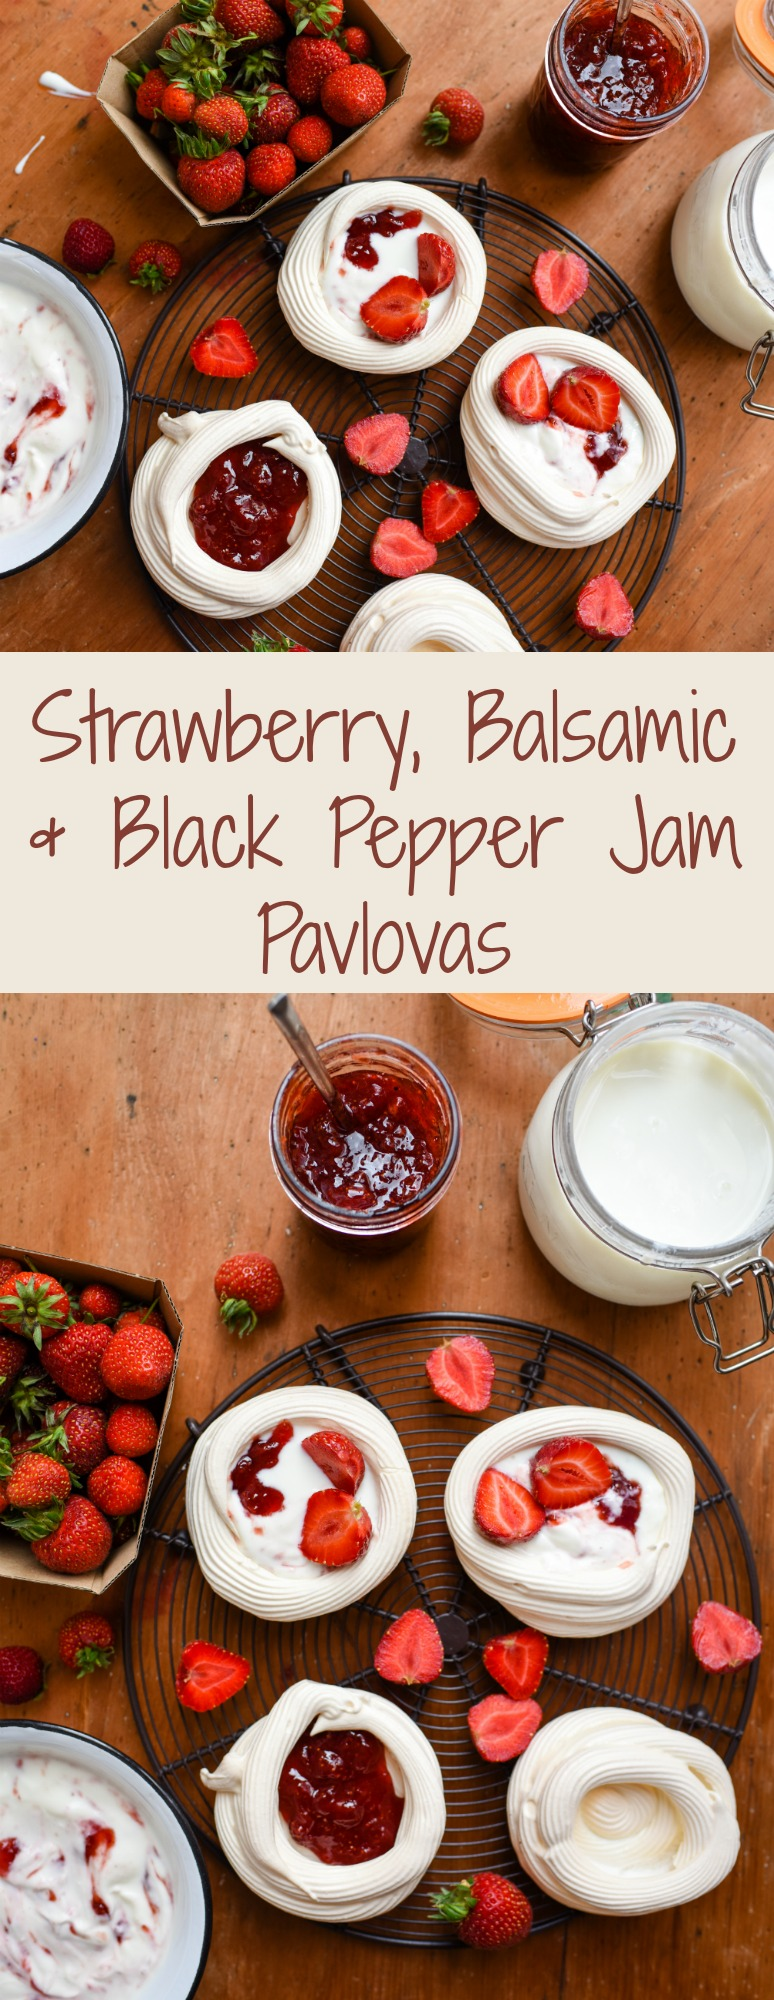 Strawberry, balsamic & black pepper jam pavlova | Patisserie Makes Perfect